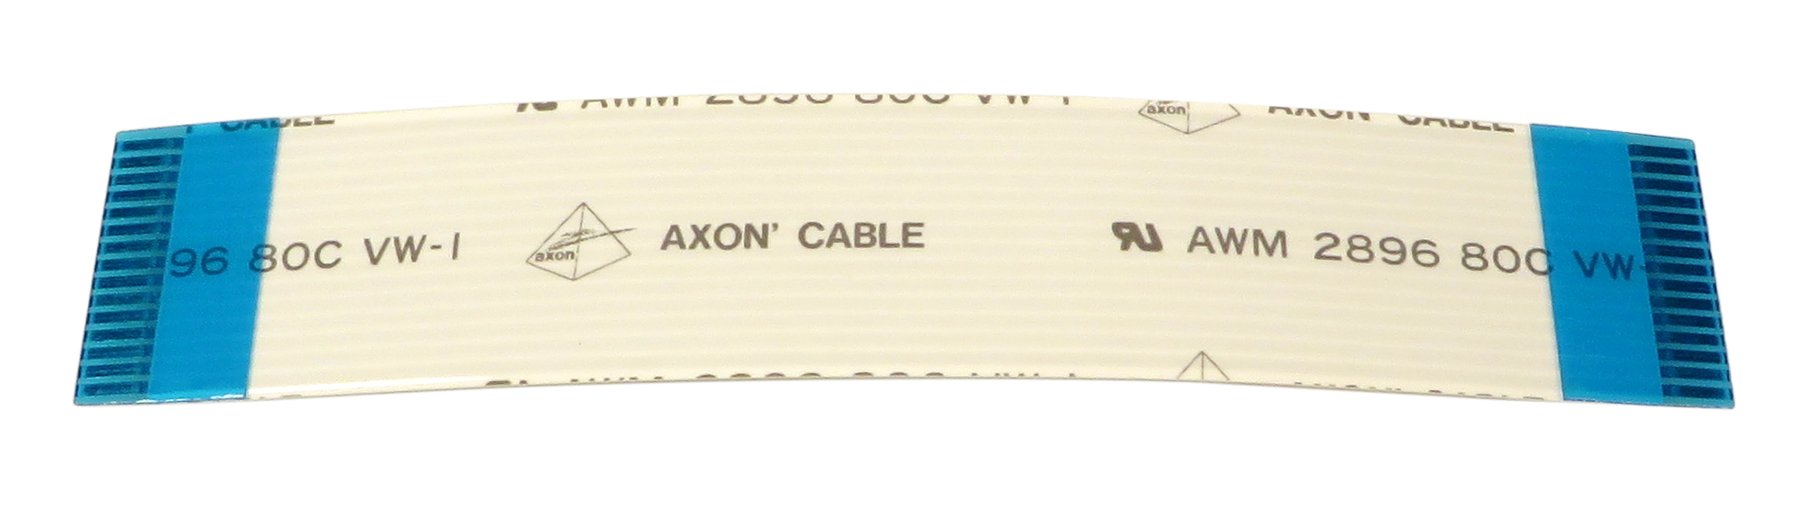 Large Ribbon Cable for TR-700 and TR-800